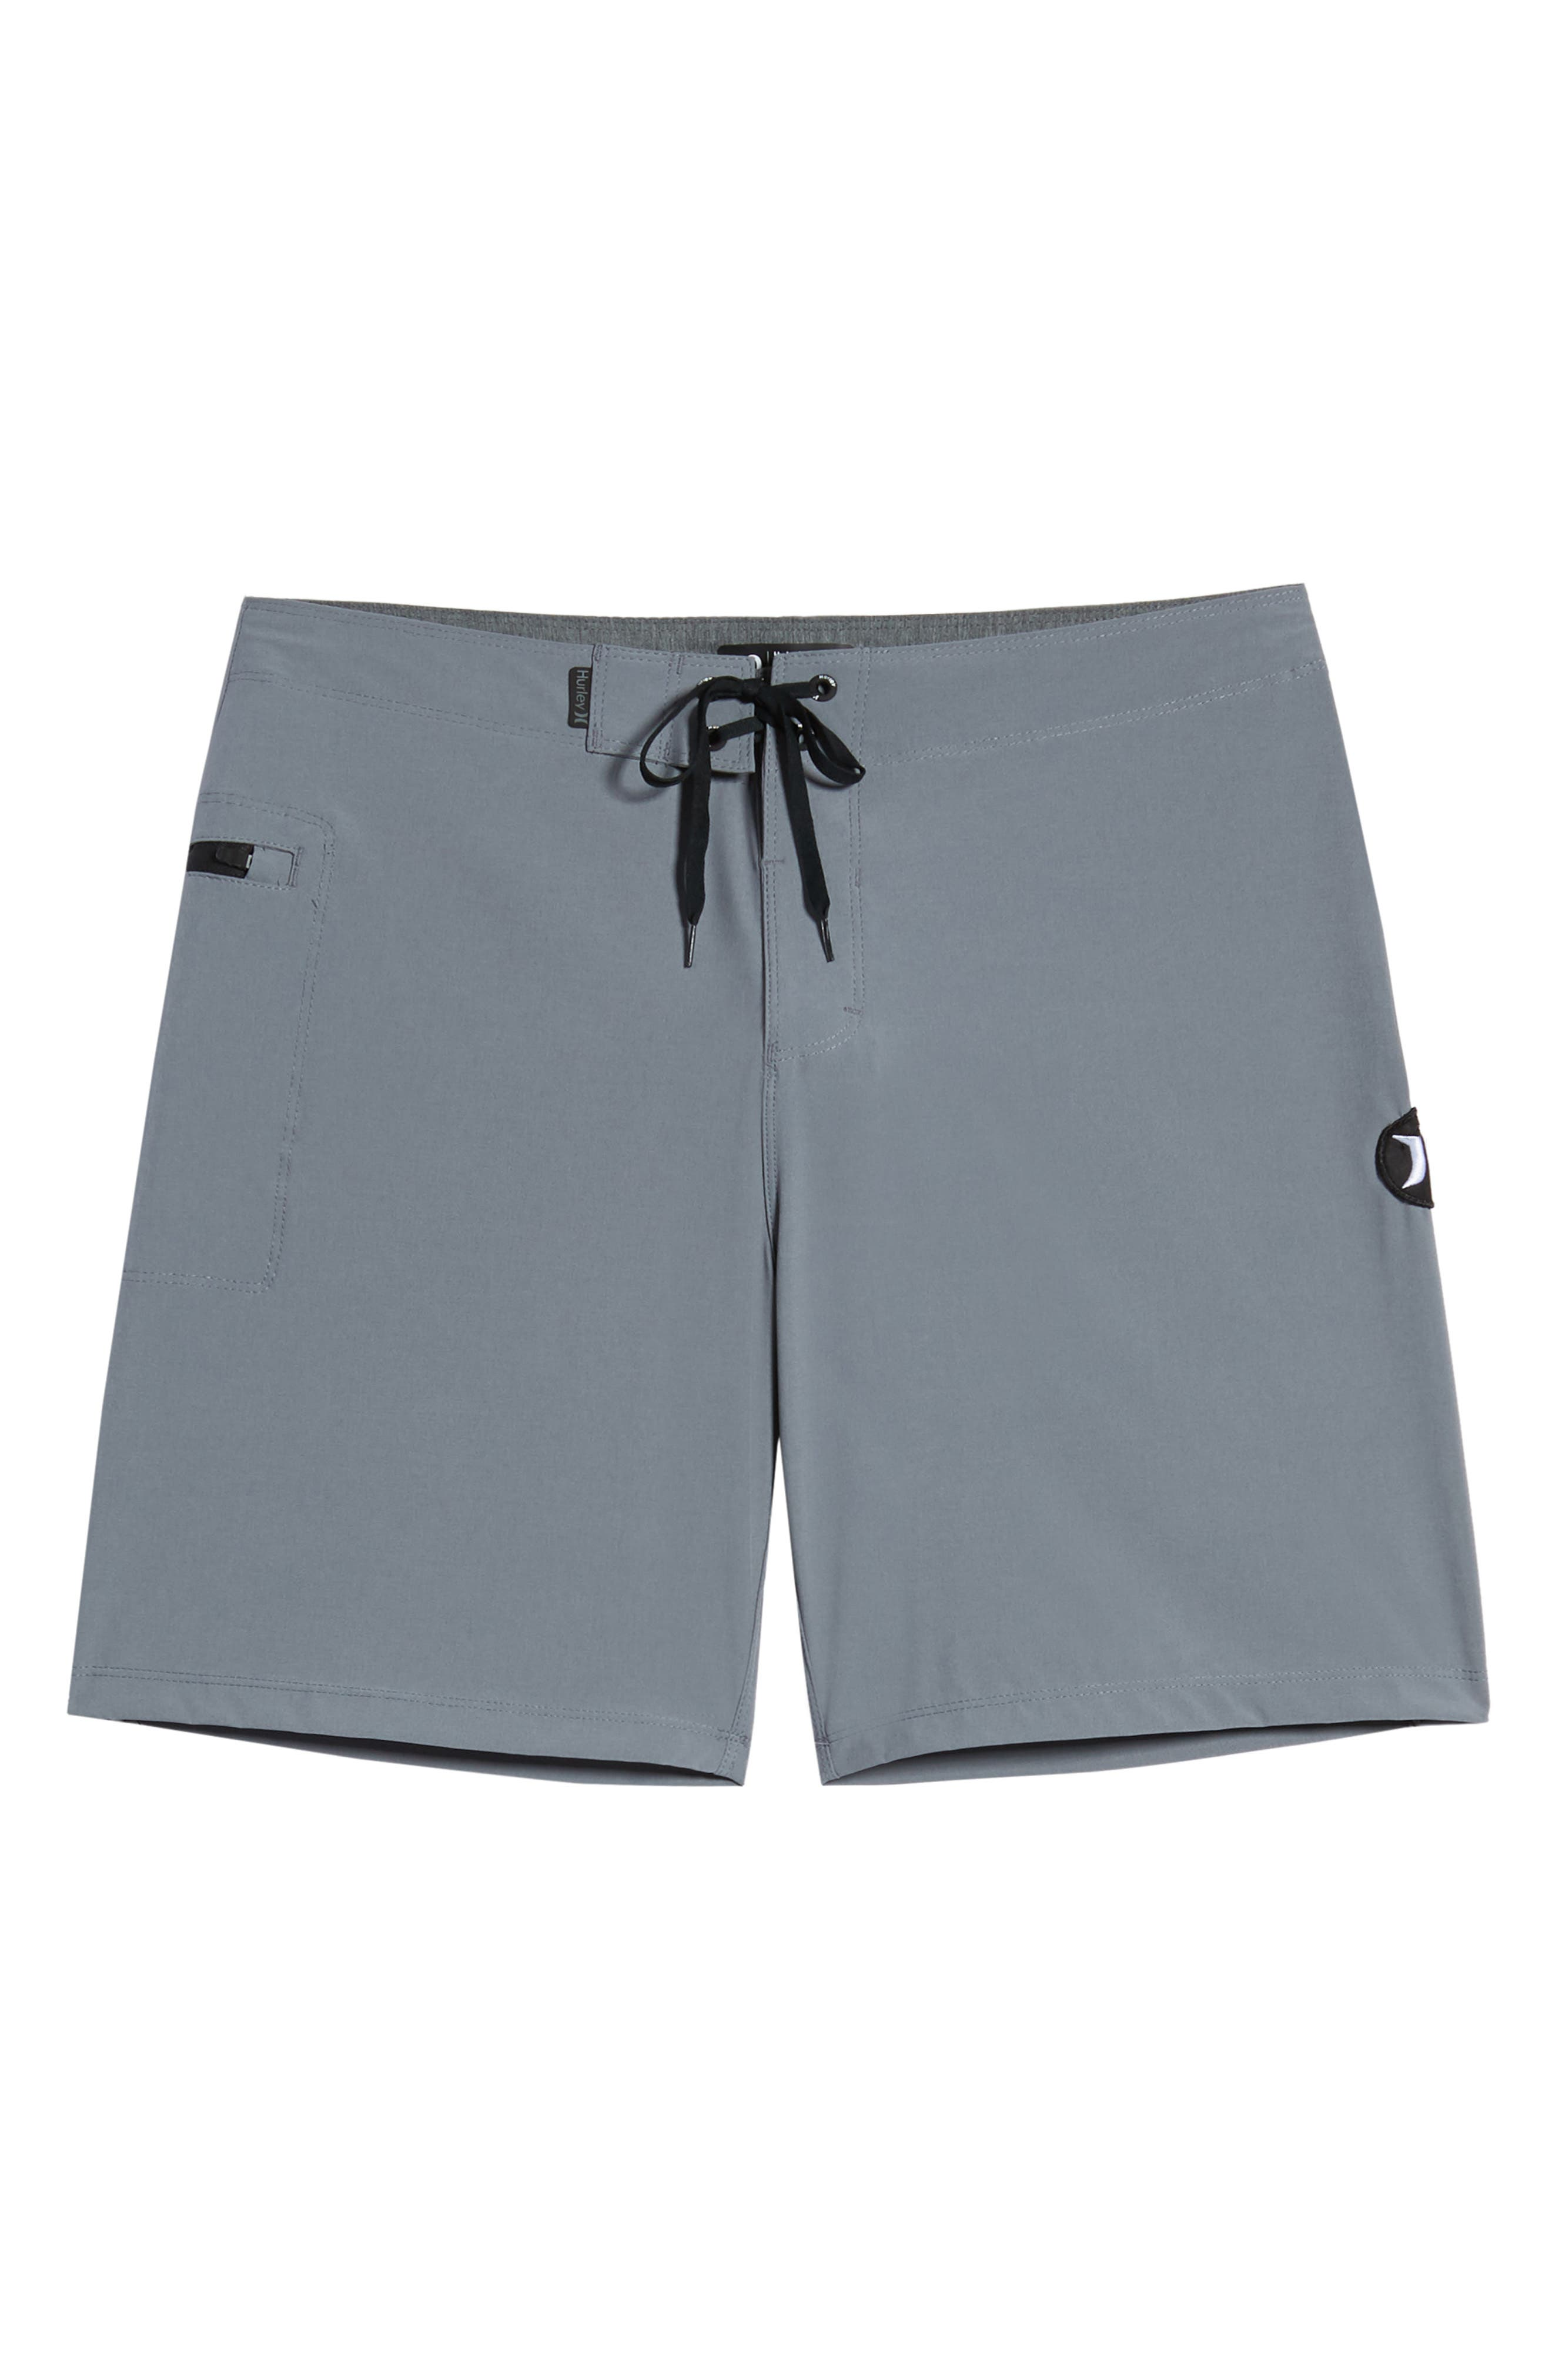 HURLEY, Phantom One & Only Board Shorts, Alternate thumbnail 6, color, COOL GREY